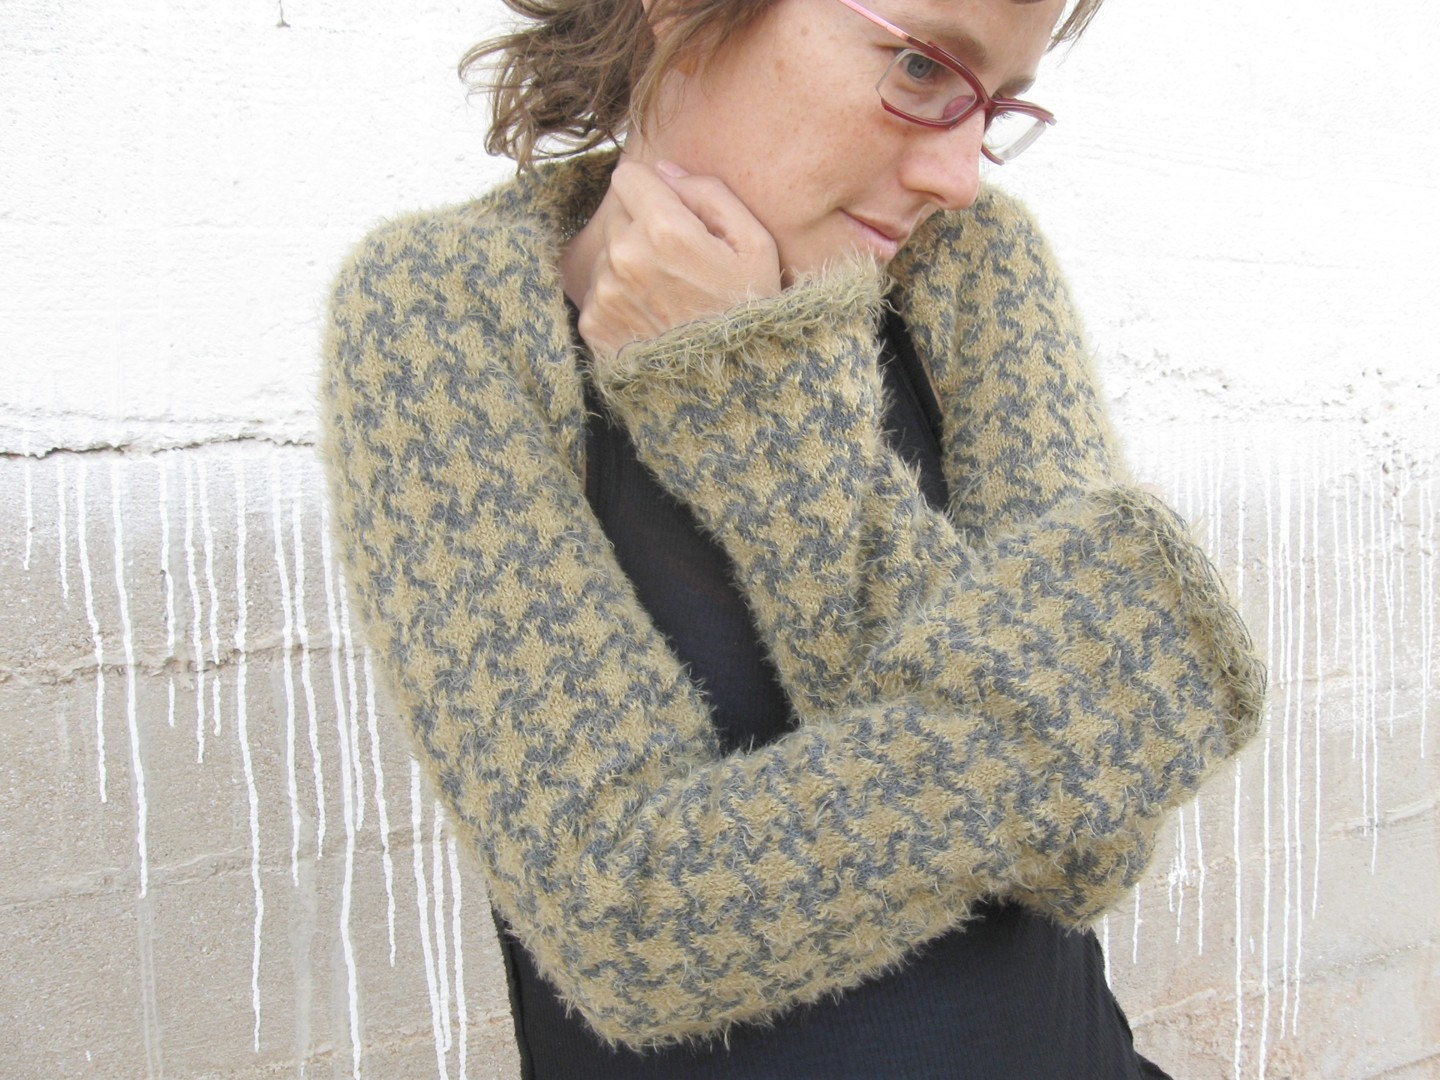 Long Sleeved Shrug Knitting Pattern : LONG SLEEVED KNITTED SHRUG with squares pattern